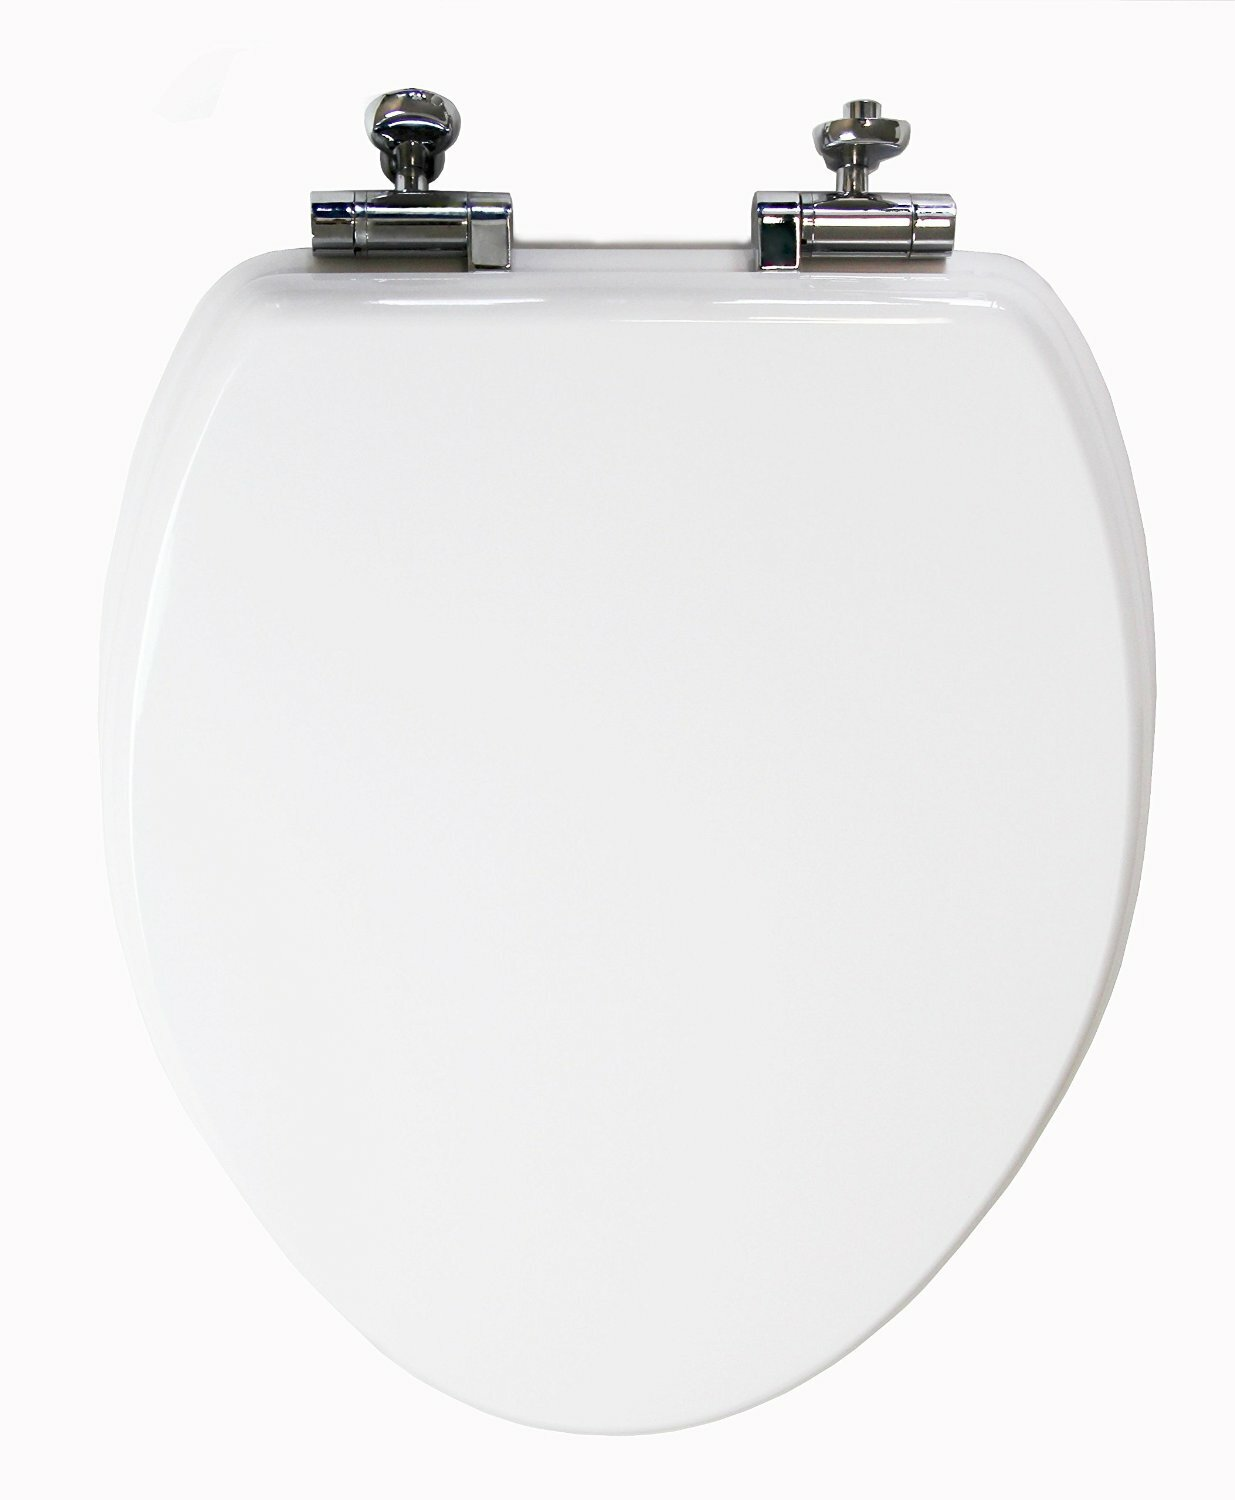 Remarkable Slow Close Toilet Seat Gamerscity Chair Design For Home Gamerscityorg